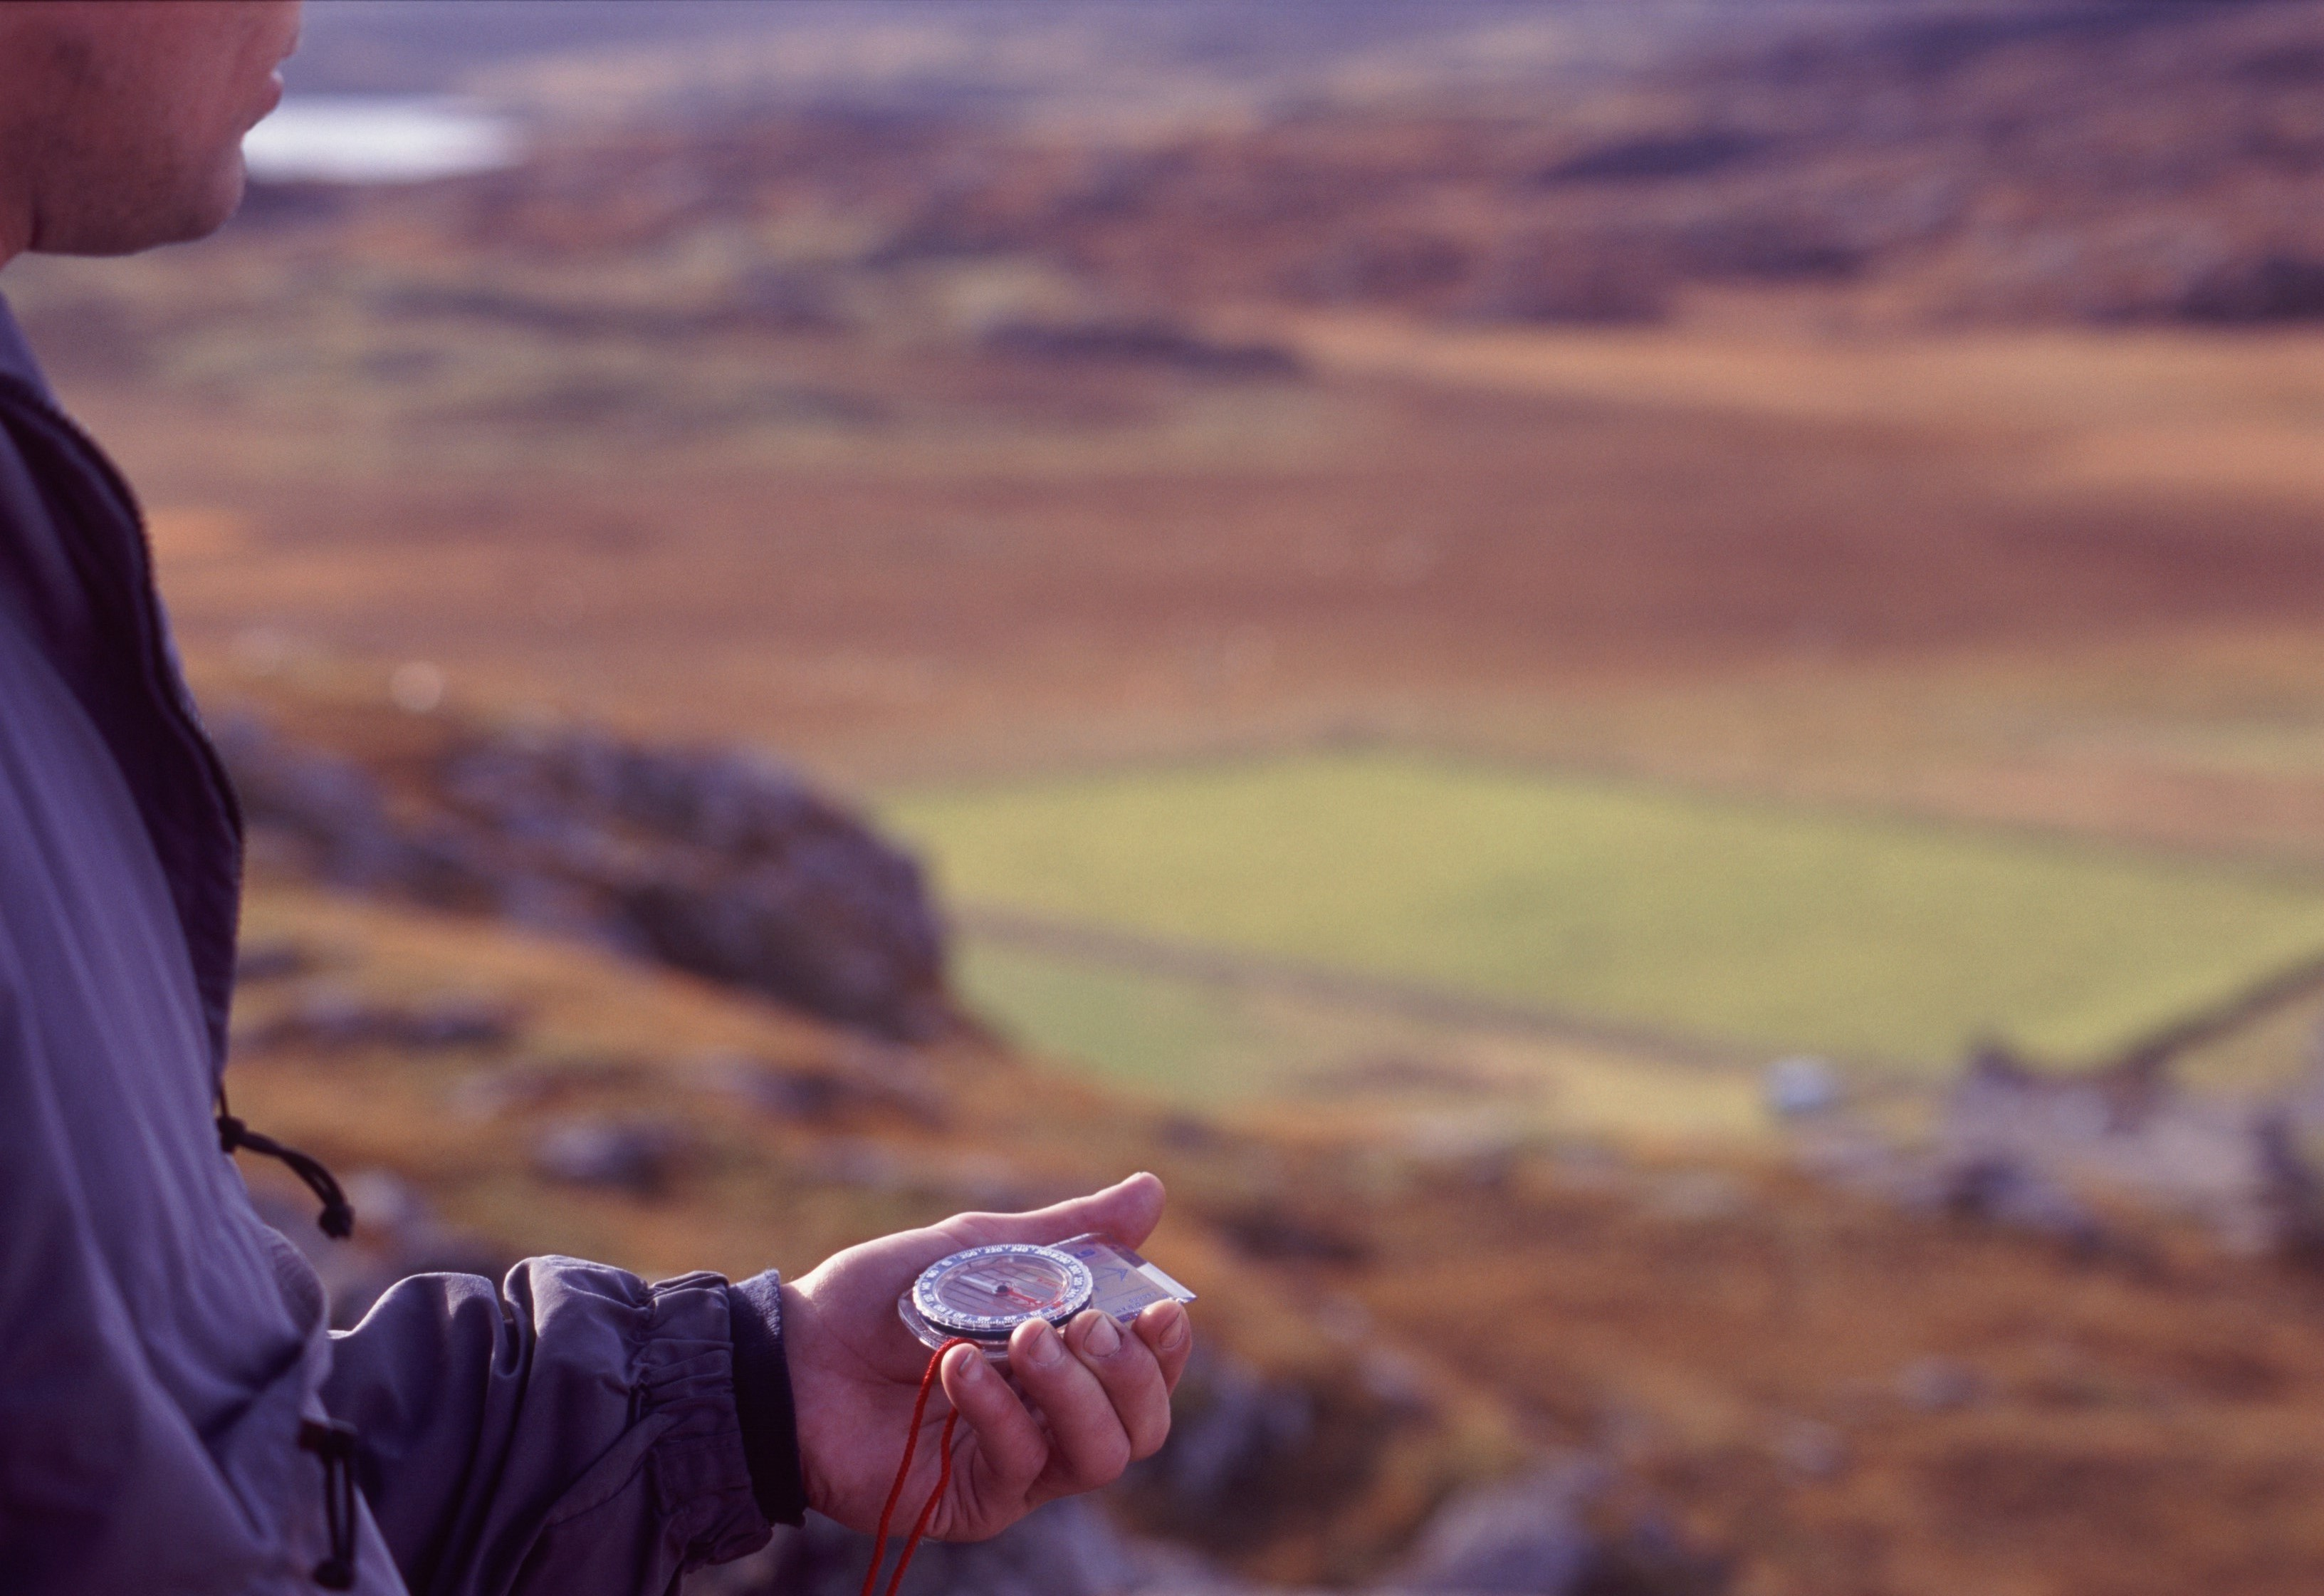 Wilderness navigation with a partial closeup view of a man holding a magnetic compass showing him the direction of magnetic north so that he can navigate to his destination